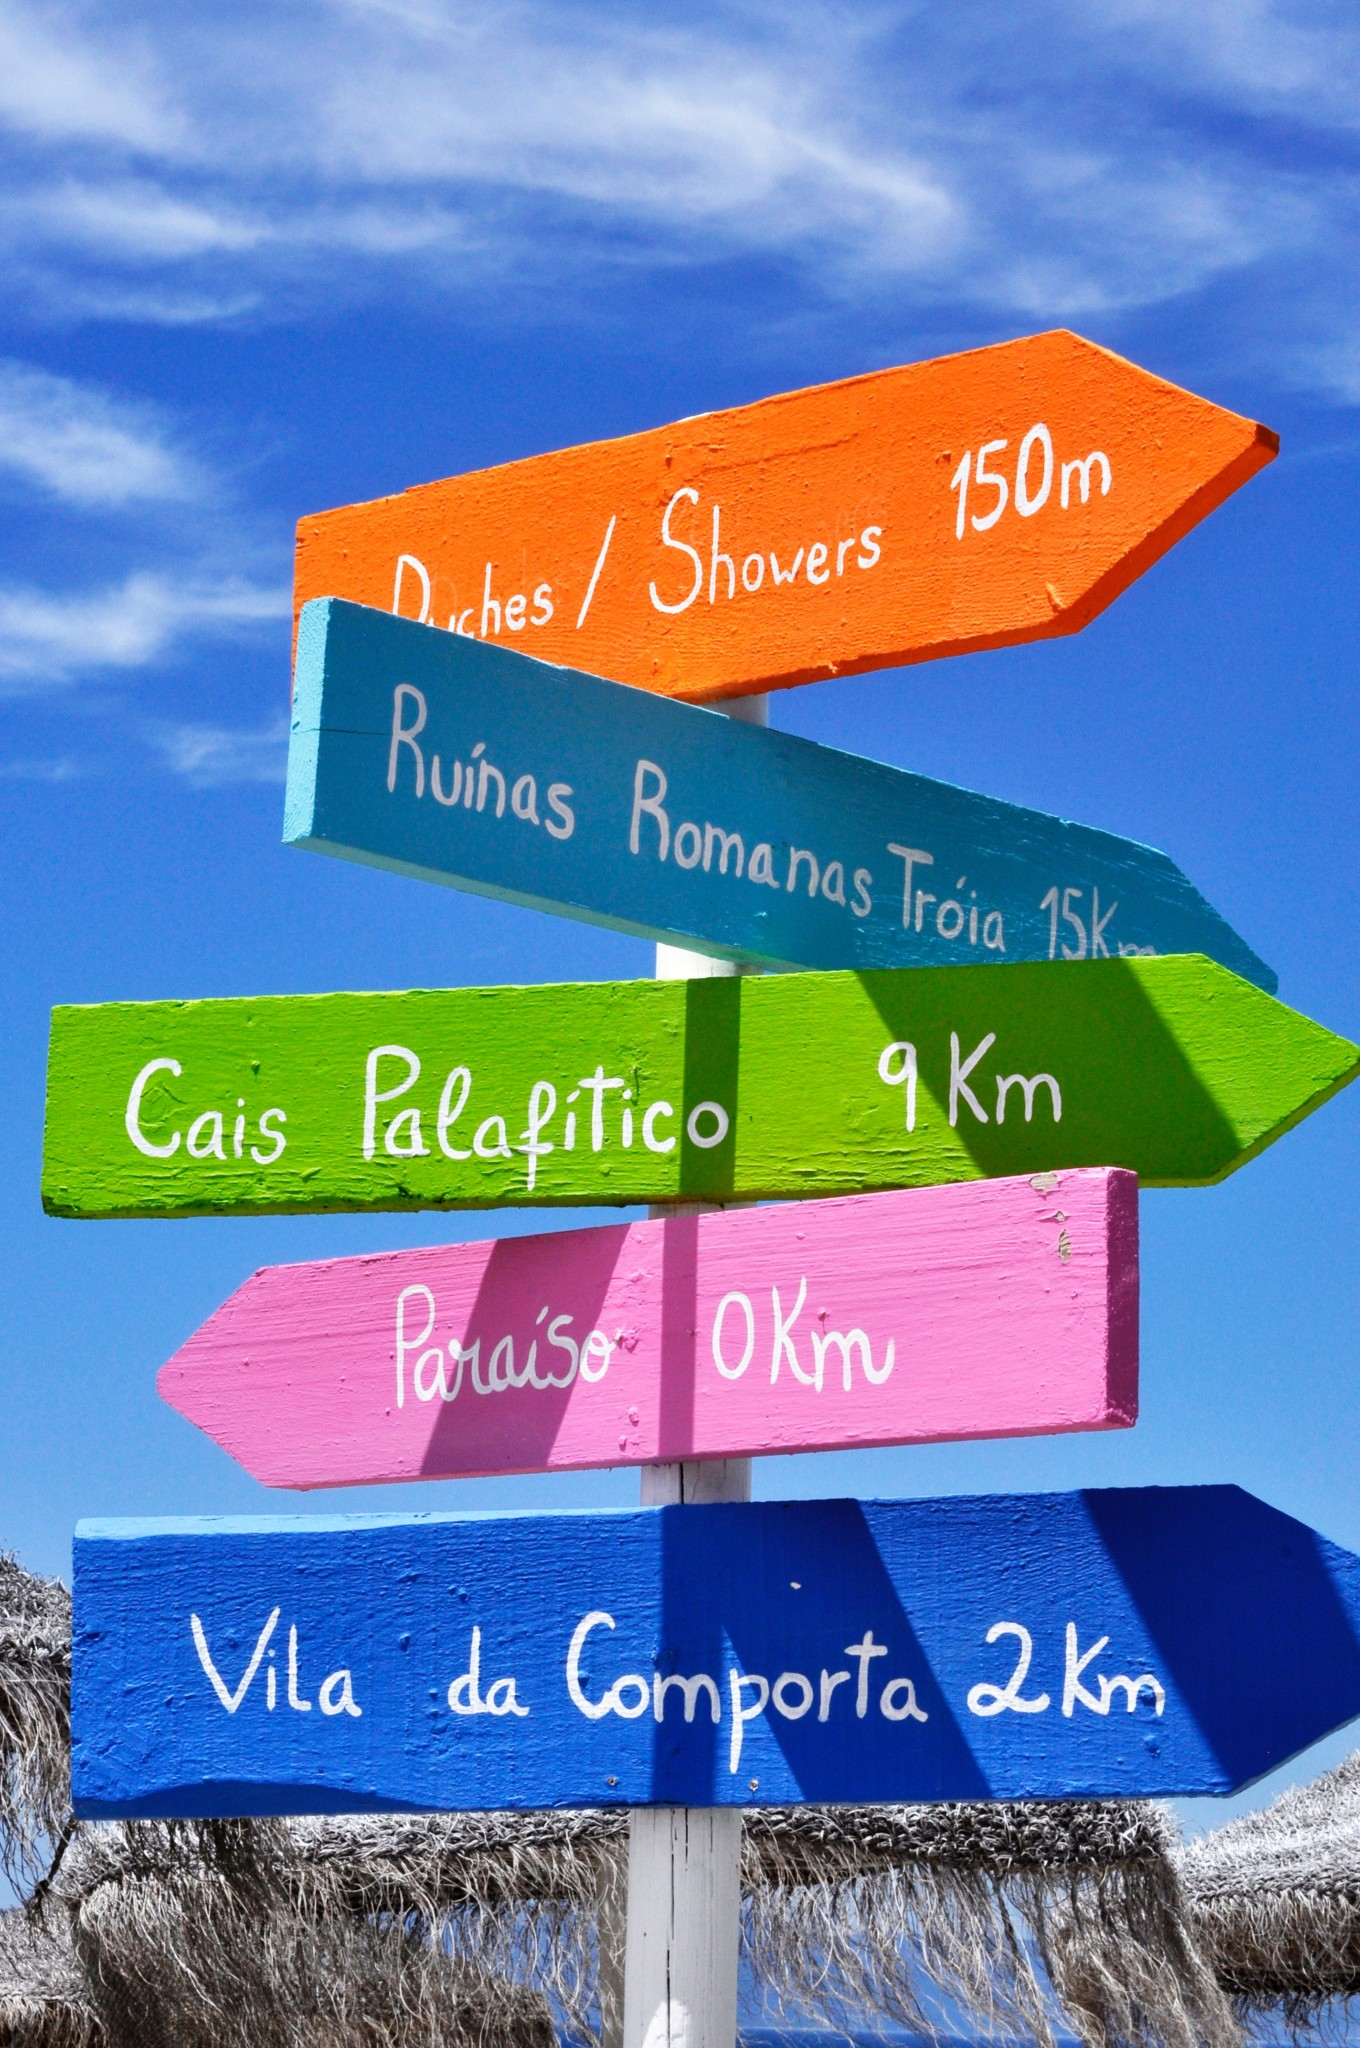 Photo of a stack of directional signs. Photo by Álvaro Montanha on Unsplash